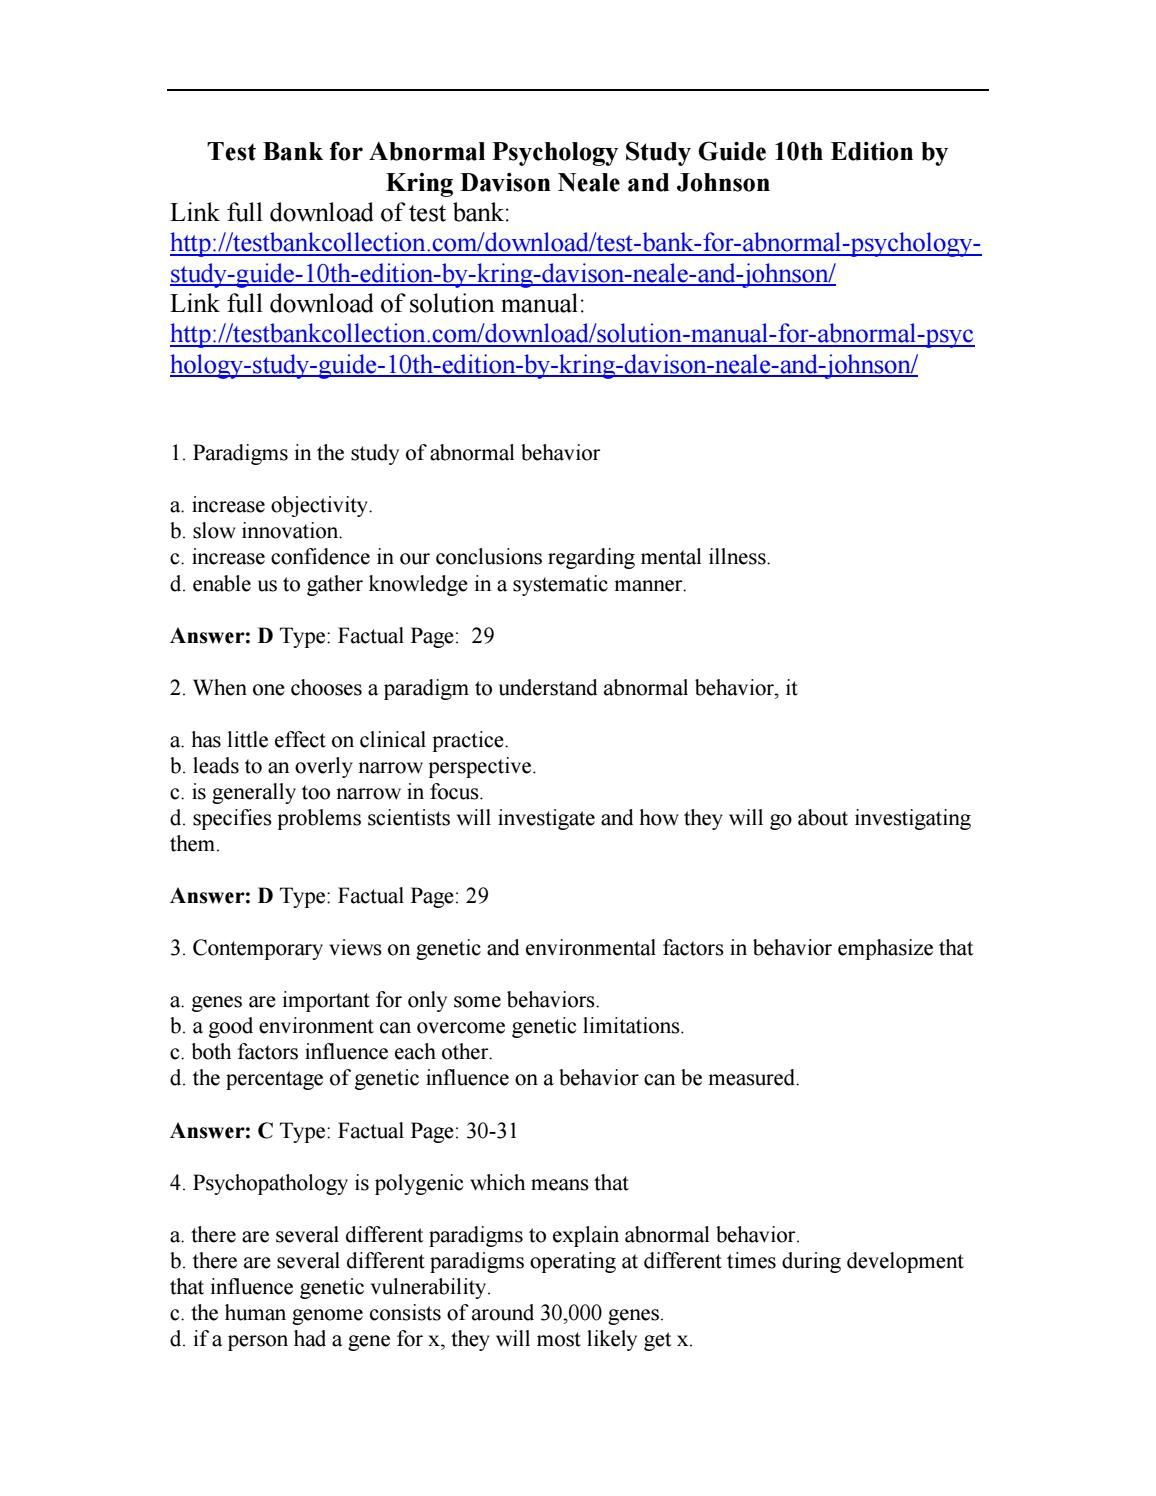 Download test bank for abnormal psychology study guide 10th edition ...